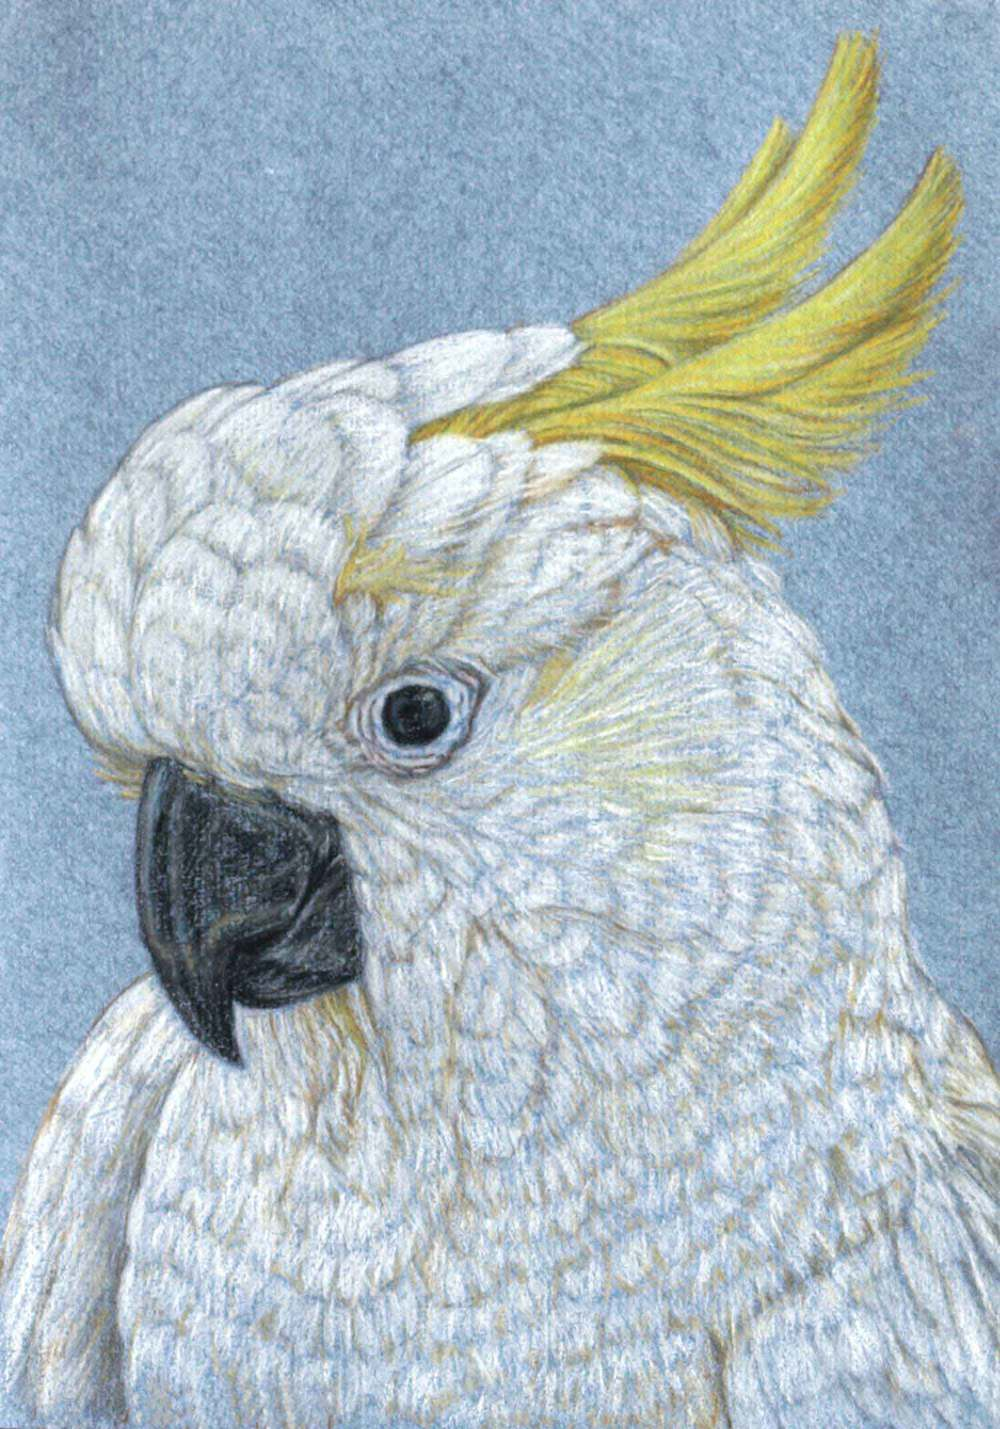 Sulphur Crested Cockatoo II 30 x 21 cm  Pastel on handmade paper  SOLD